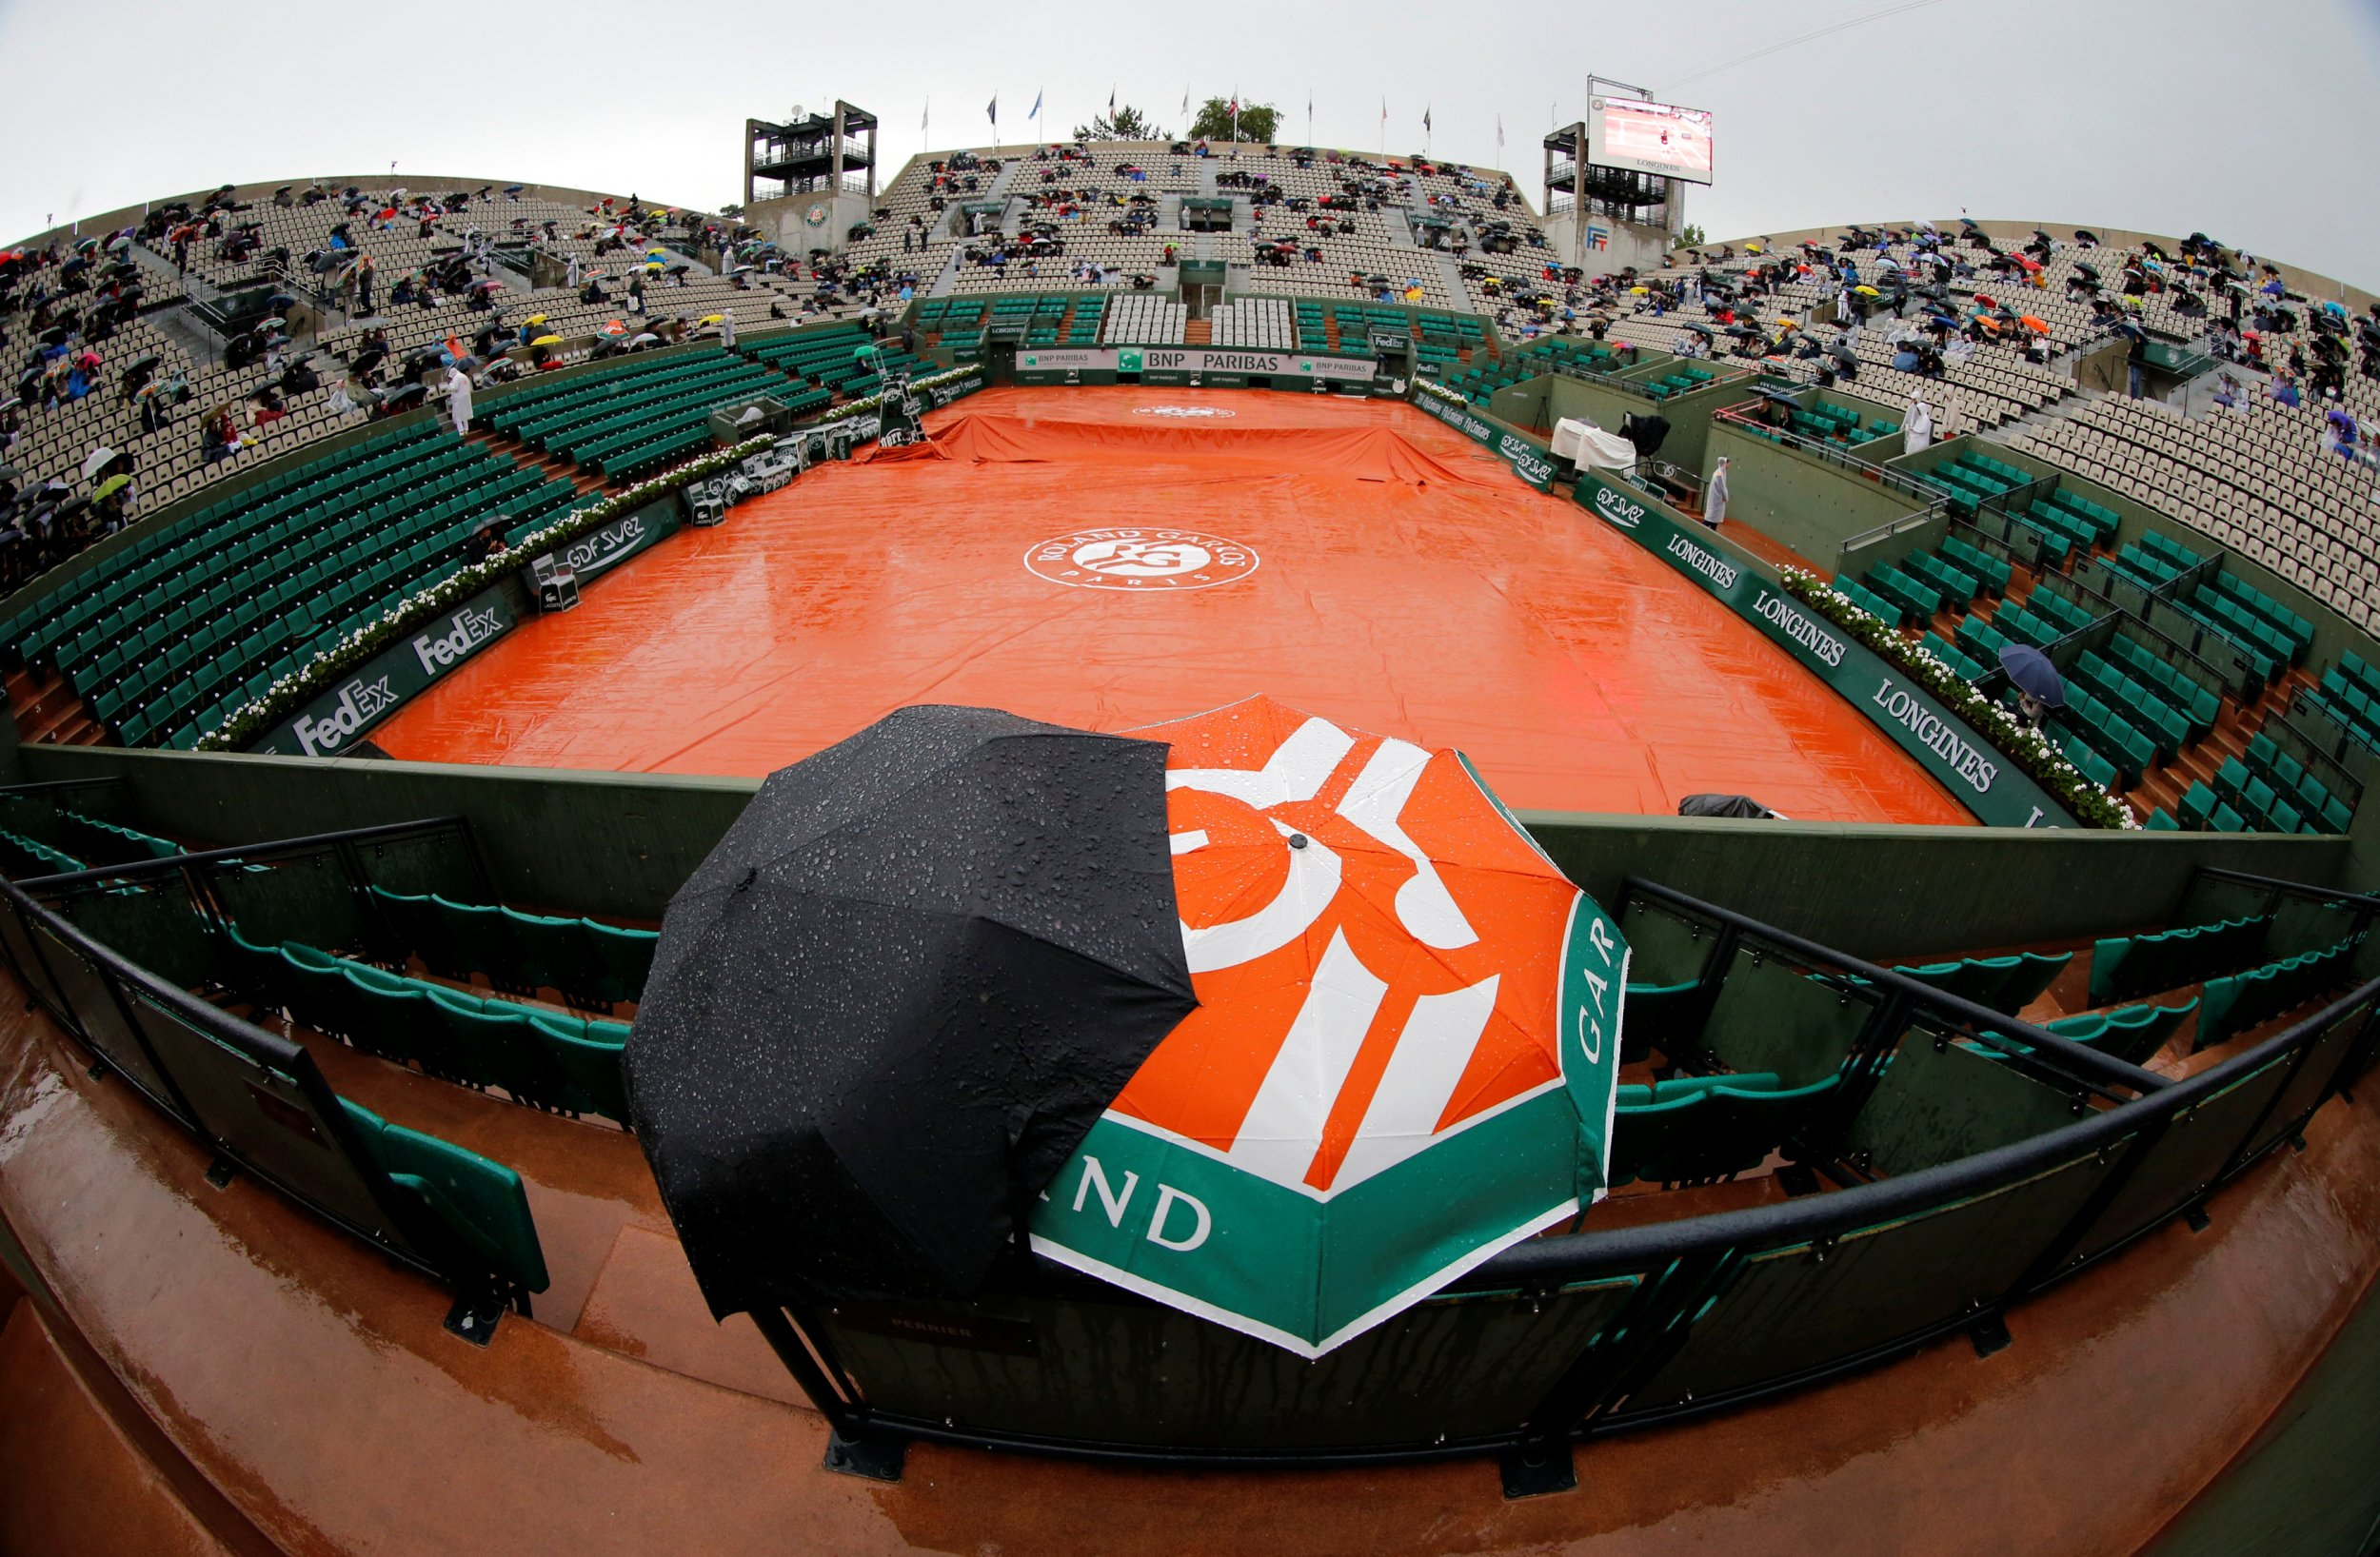 french open 2017 expansion of roland garros aims to. Black Bedroom Furniture Sets. Home Design Ideas